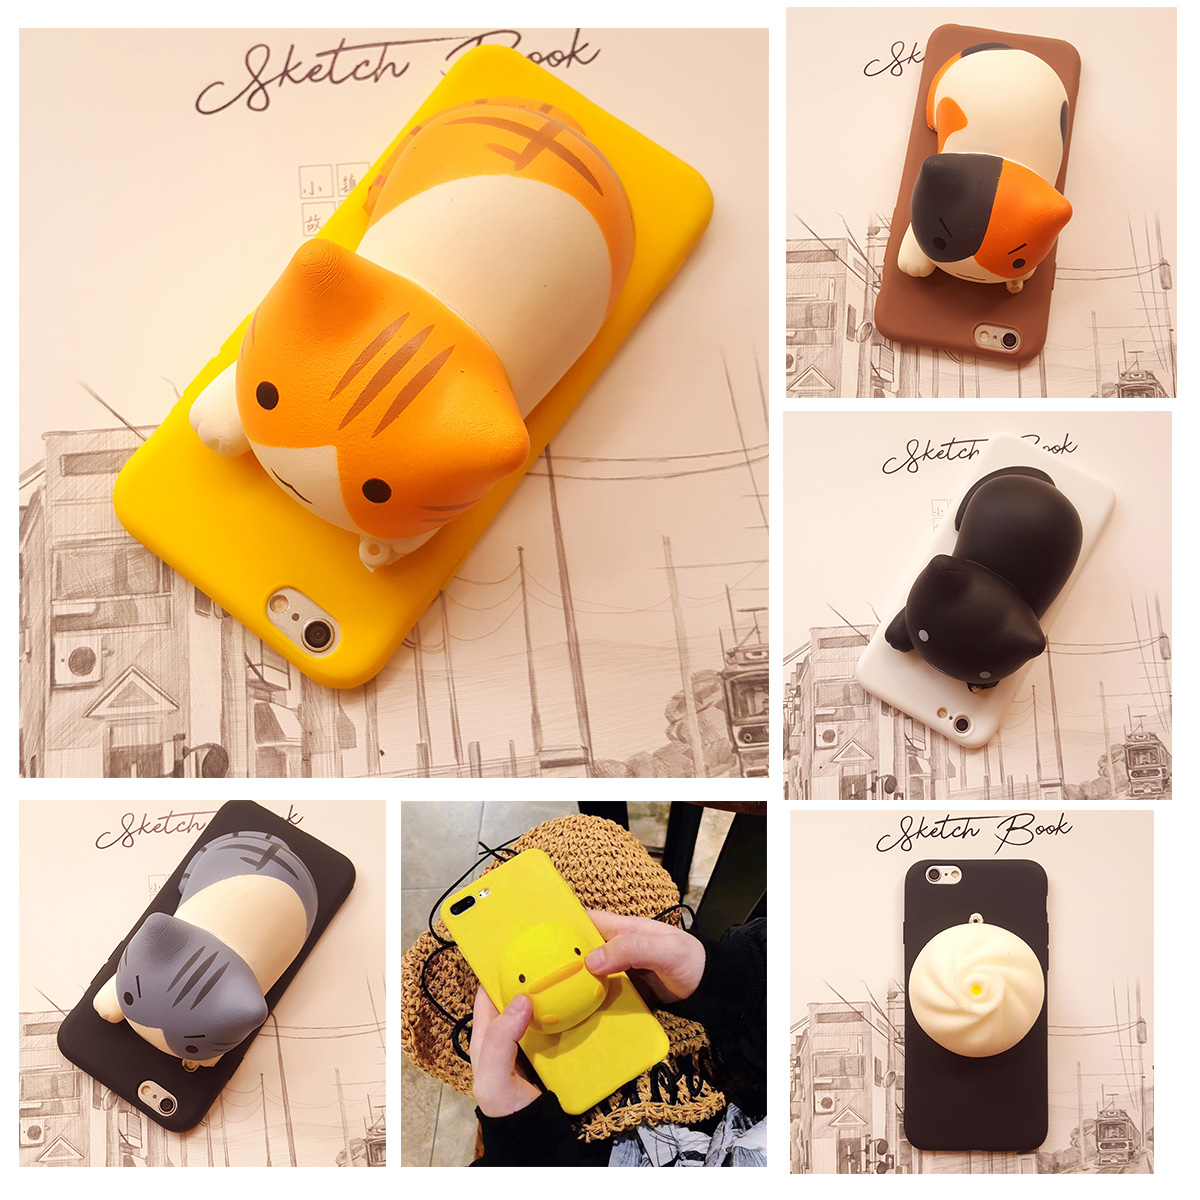 <font><b>3D</b></font> Cartoon Cat Holder Phone Case for <font><b>Xiaomi</b></font> Max Mix 2S <font><b>3</b></font> Play <font><b>Redmi</b></font> <font><b>Note</b></font> <font><b>3</b></font> 4 4X 5 5A 6 7 8 <font><b>Pro</b></font> 8T 9 S2 Squeeze Stress Soft Cover image